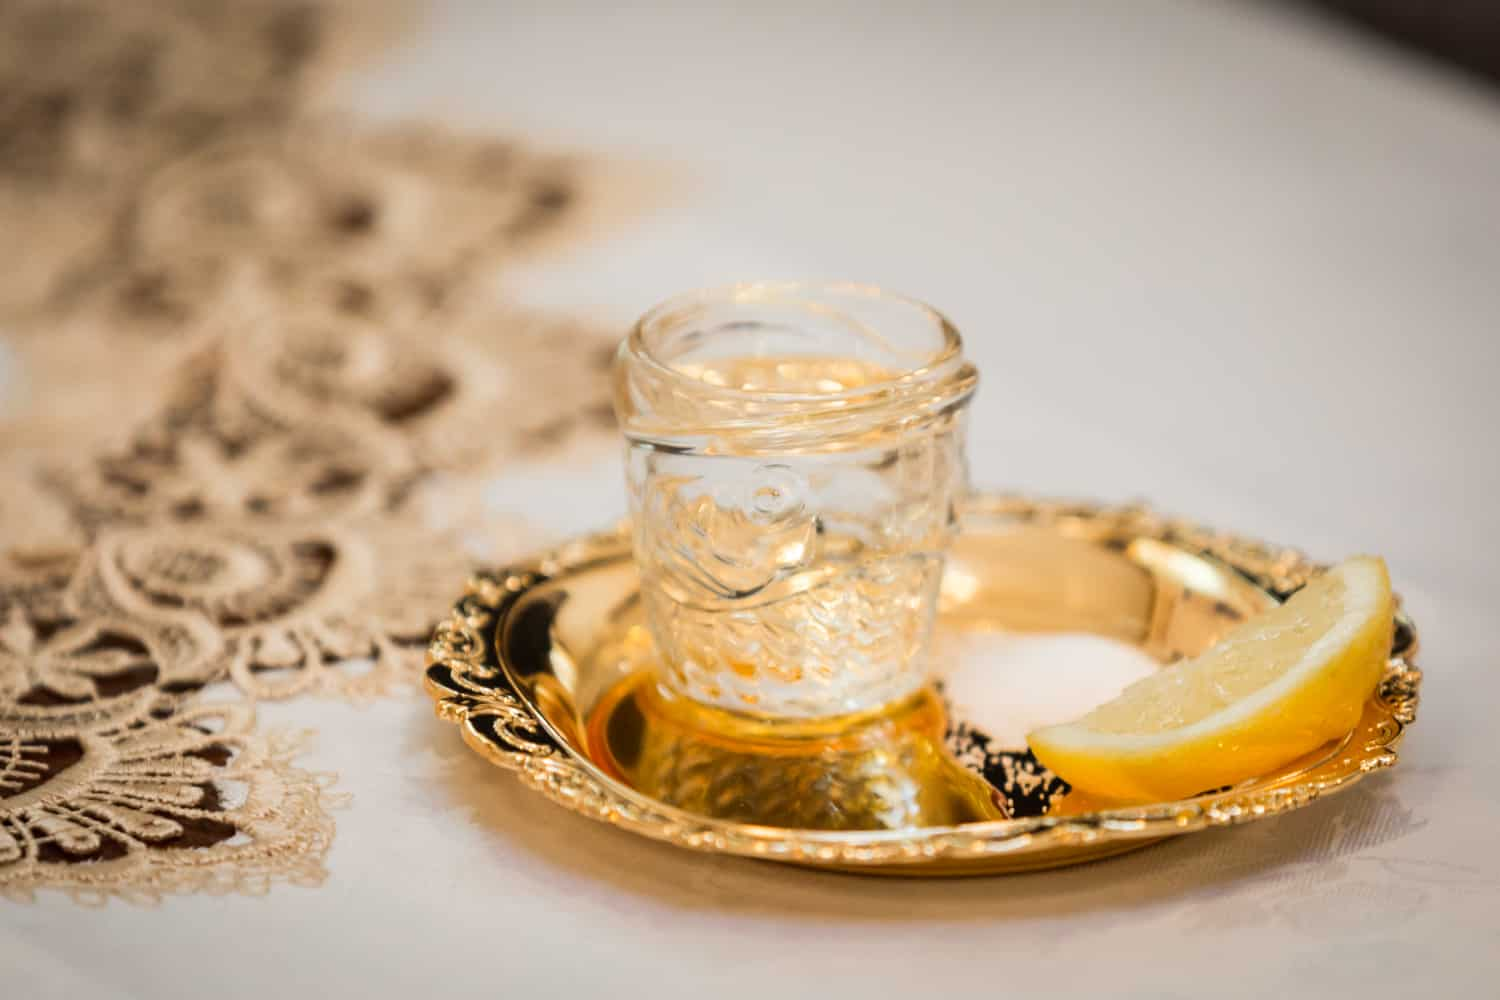 Gold plate with lemon slice and small jar of honey